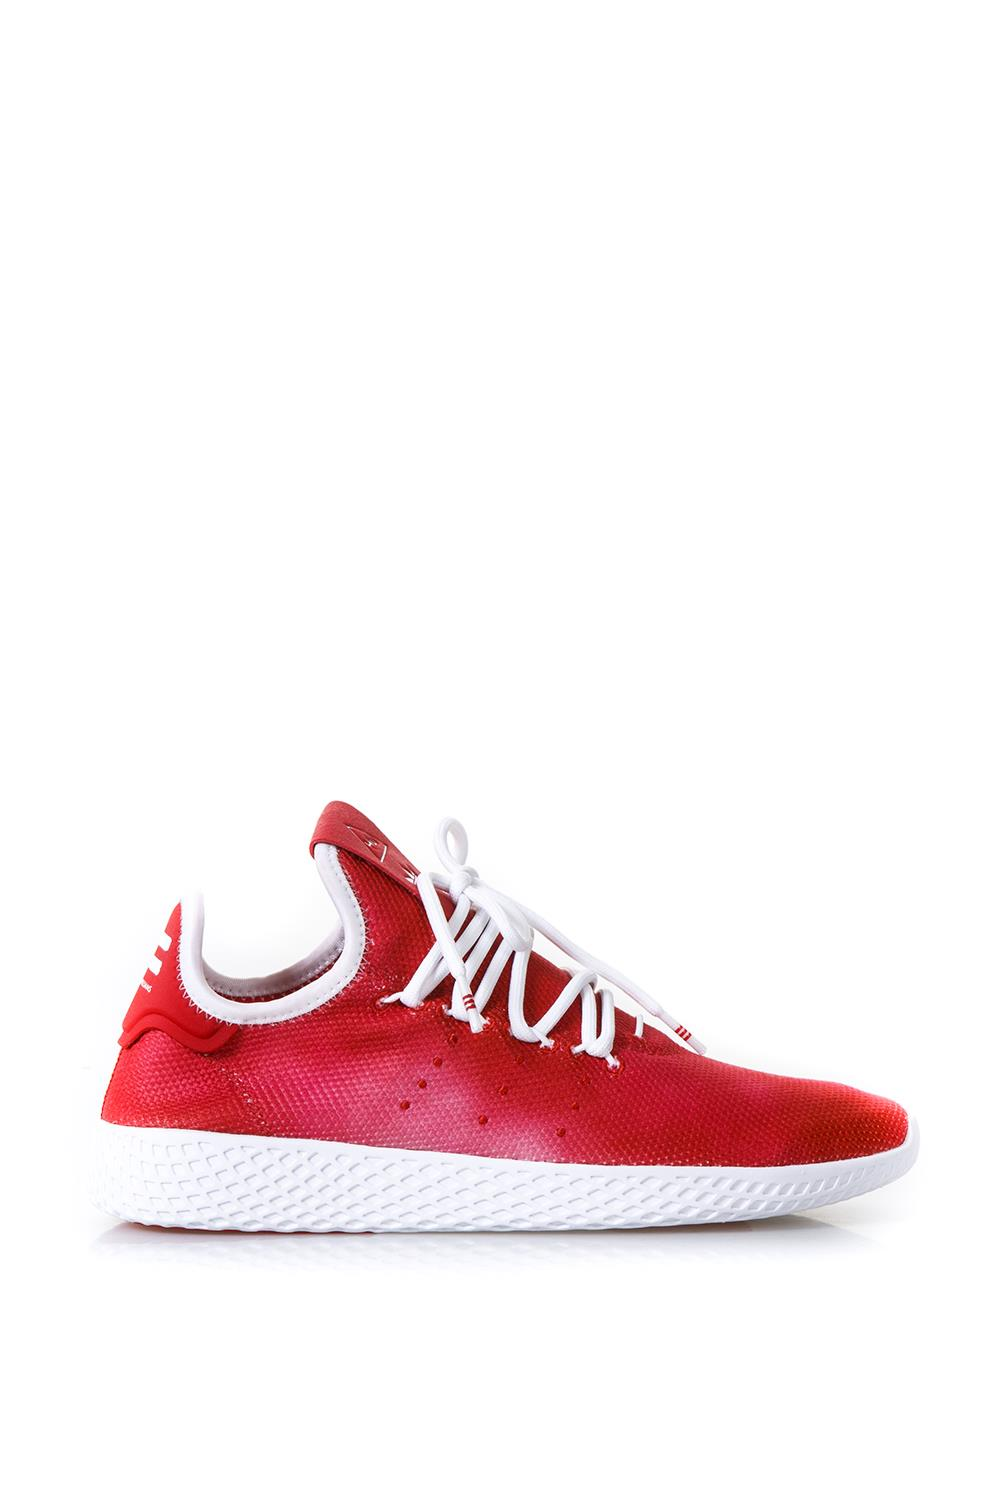 6eac45af4 TENNIS HU RED SNEAKERS SS 2018 - ADIDAS   PHARRELL WILLIAMS - Boutique  Galiano